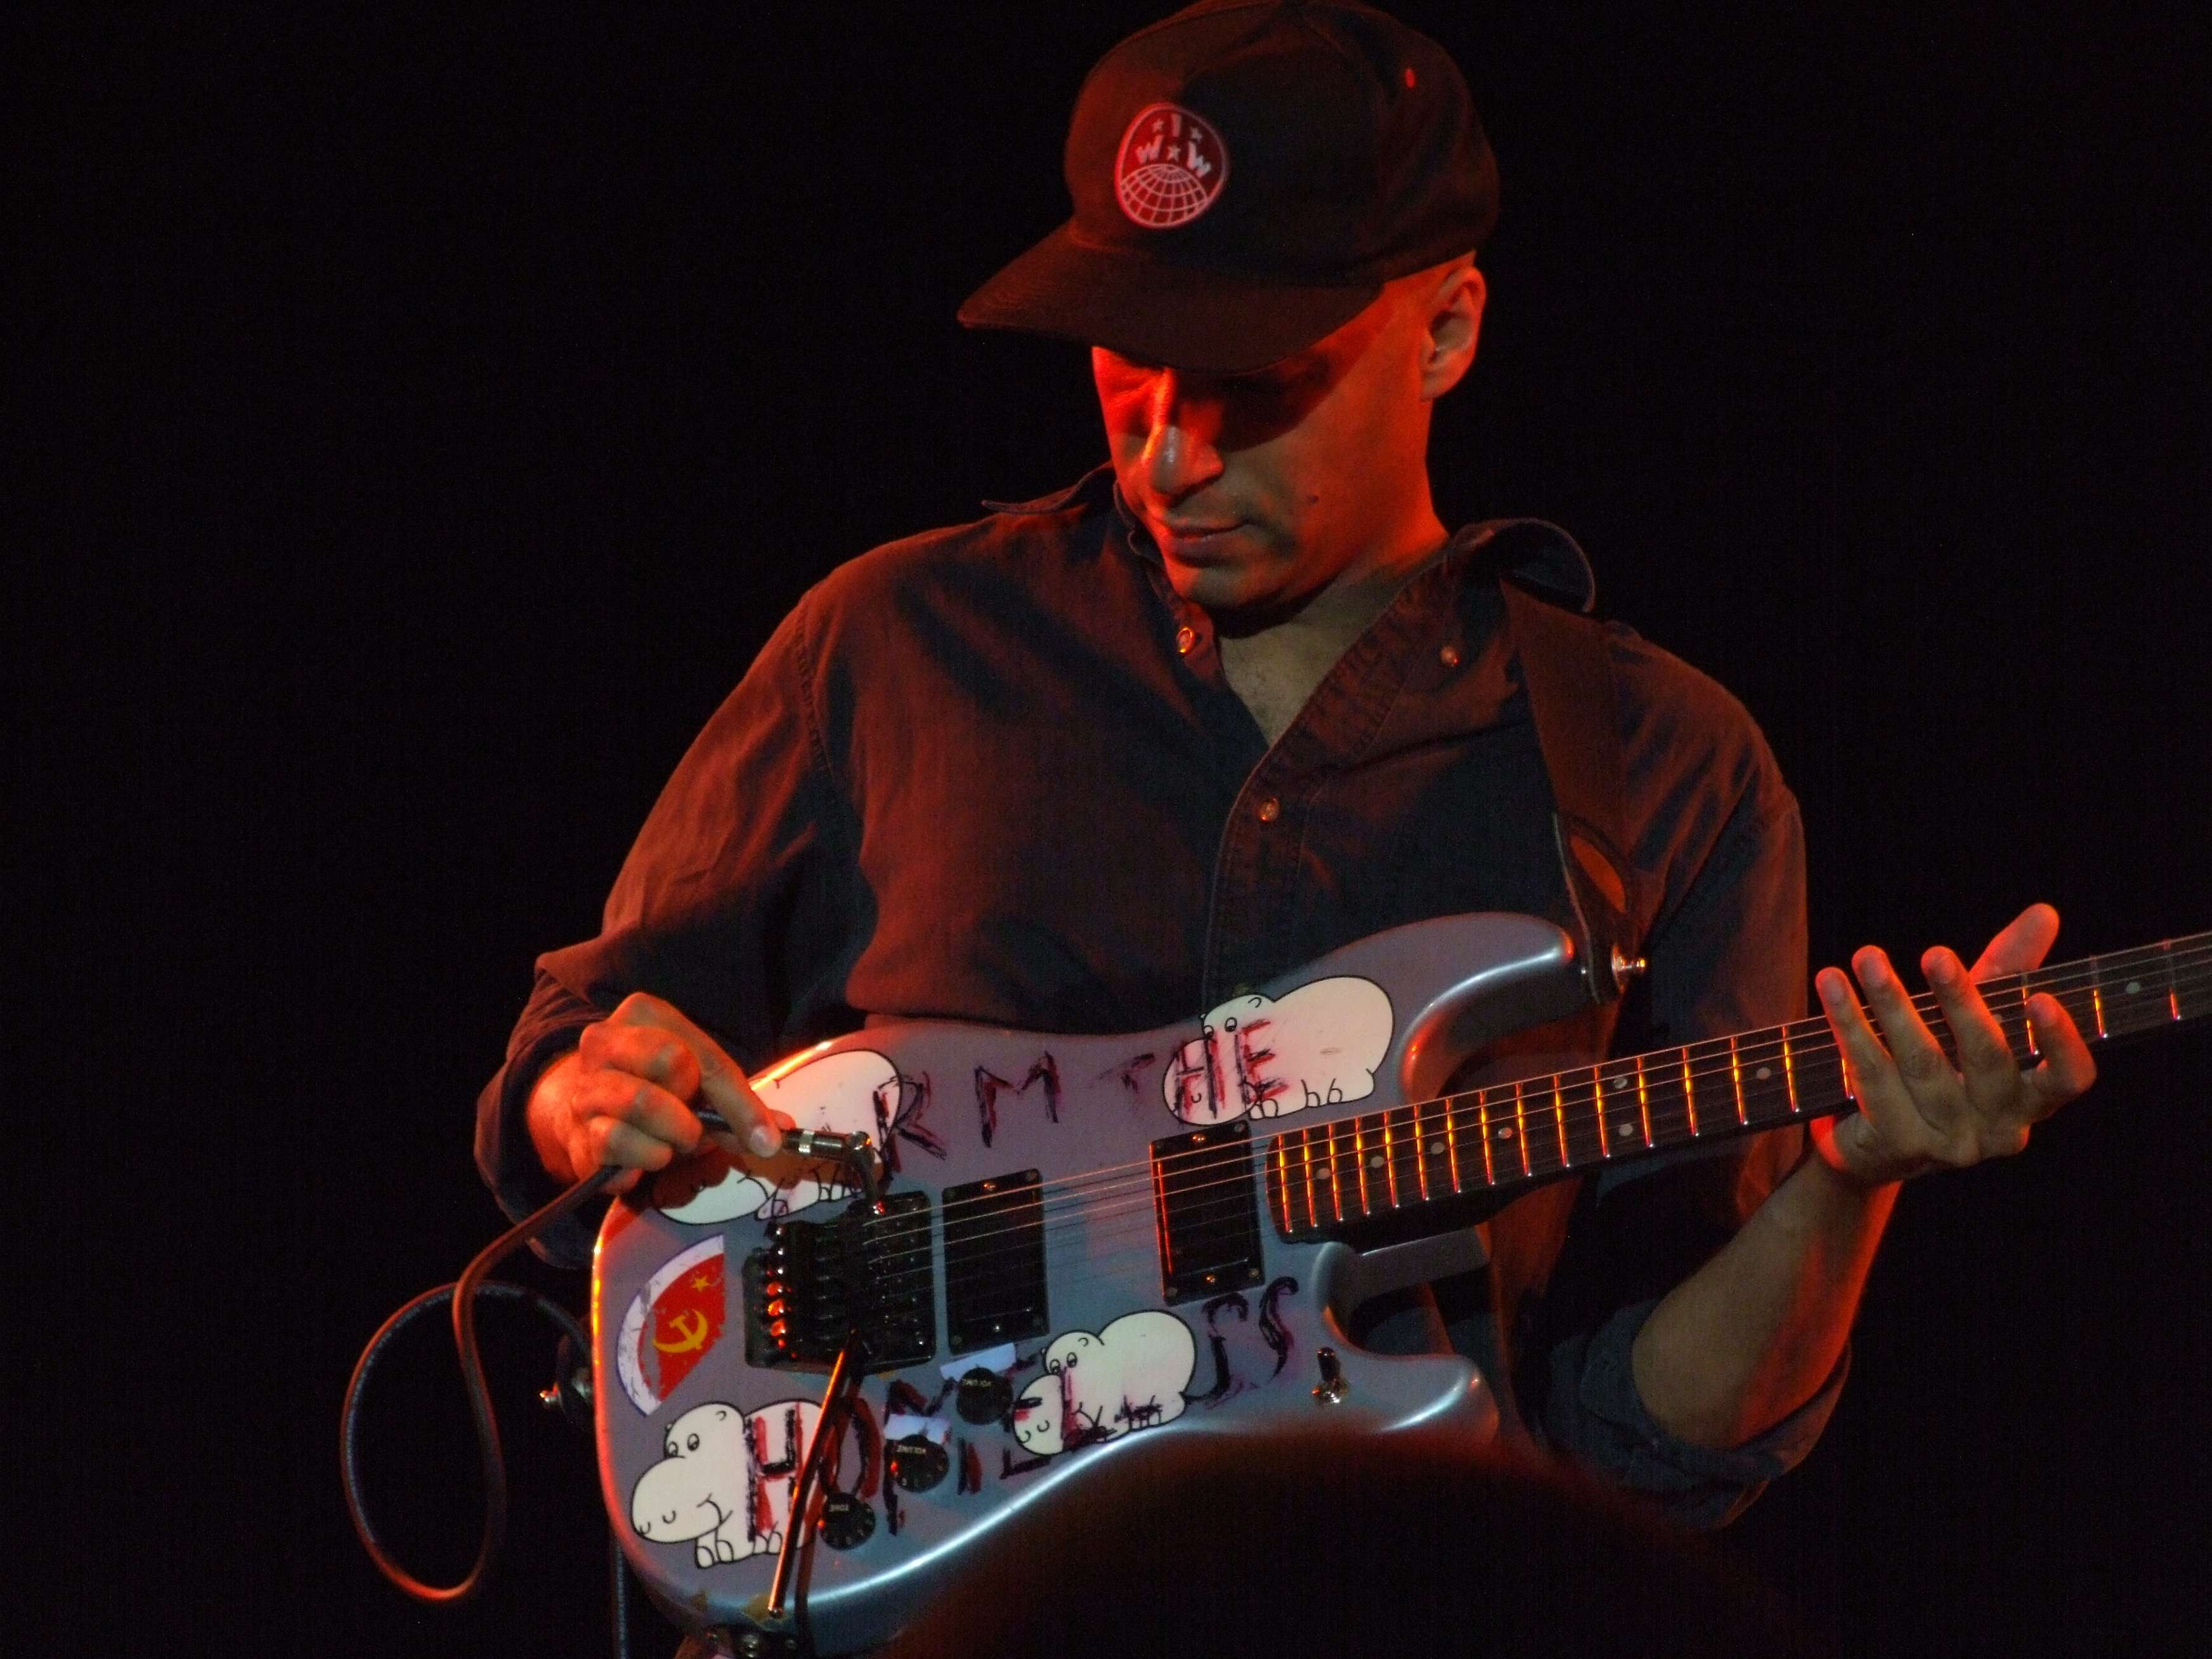 Tom Morello perfotming at Nokia Theater, New York